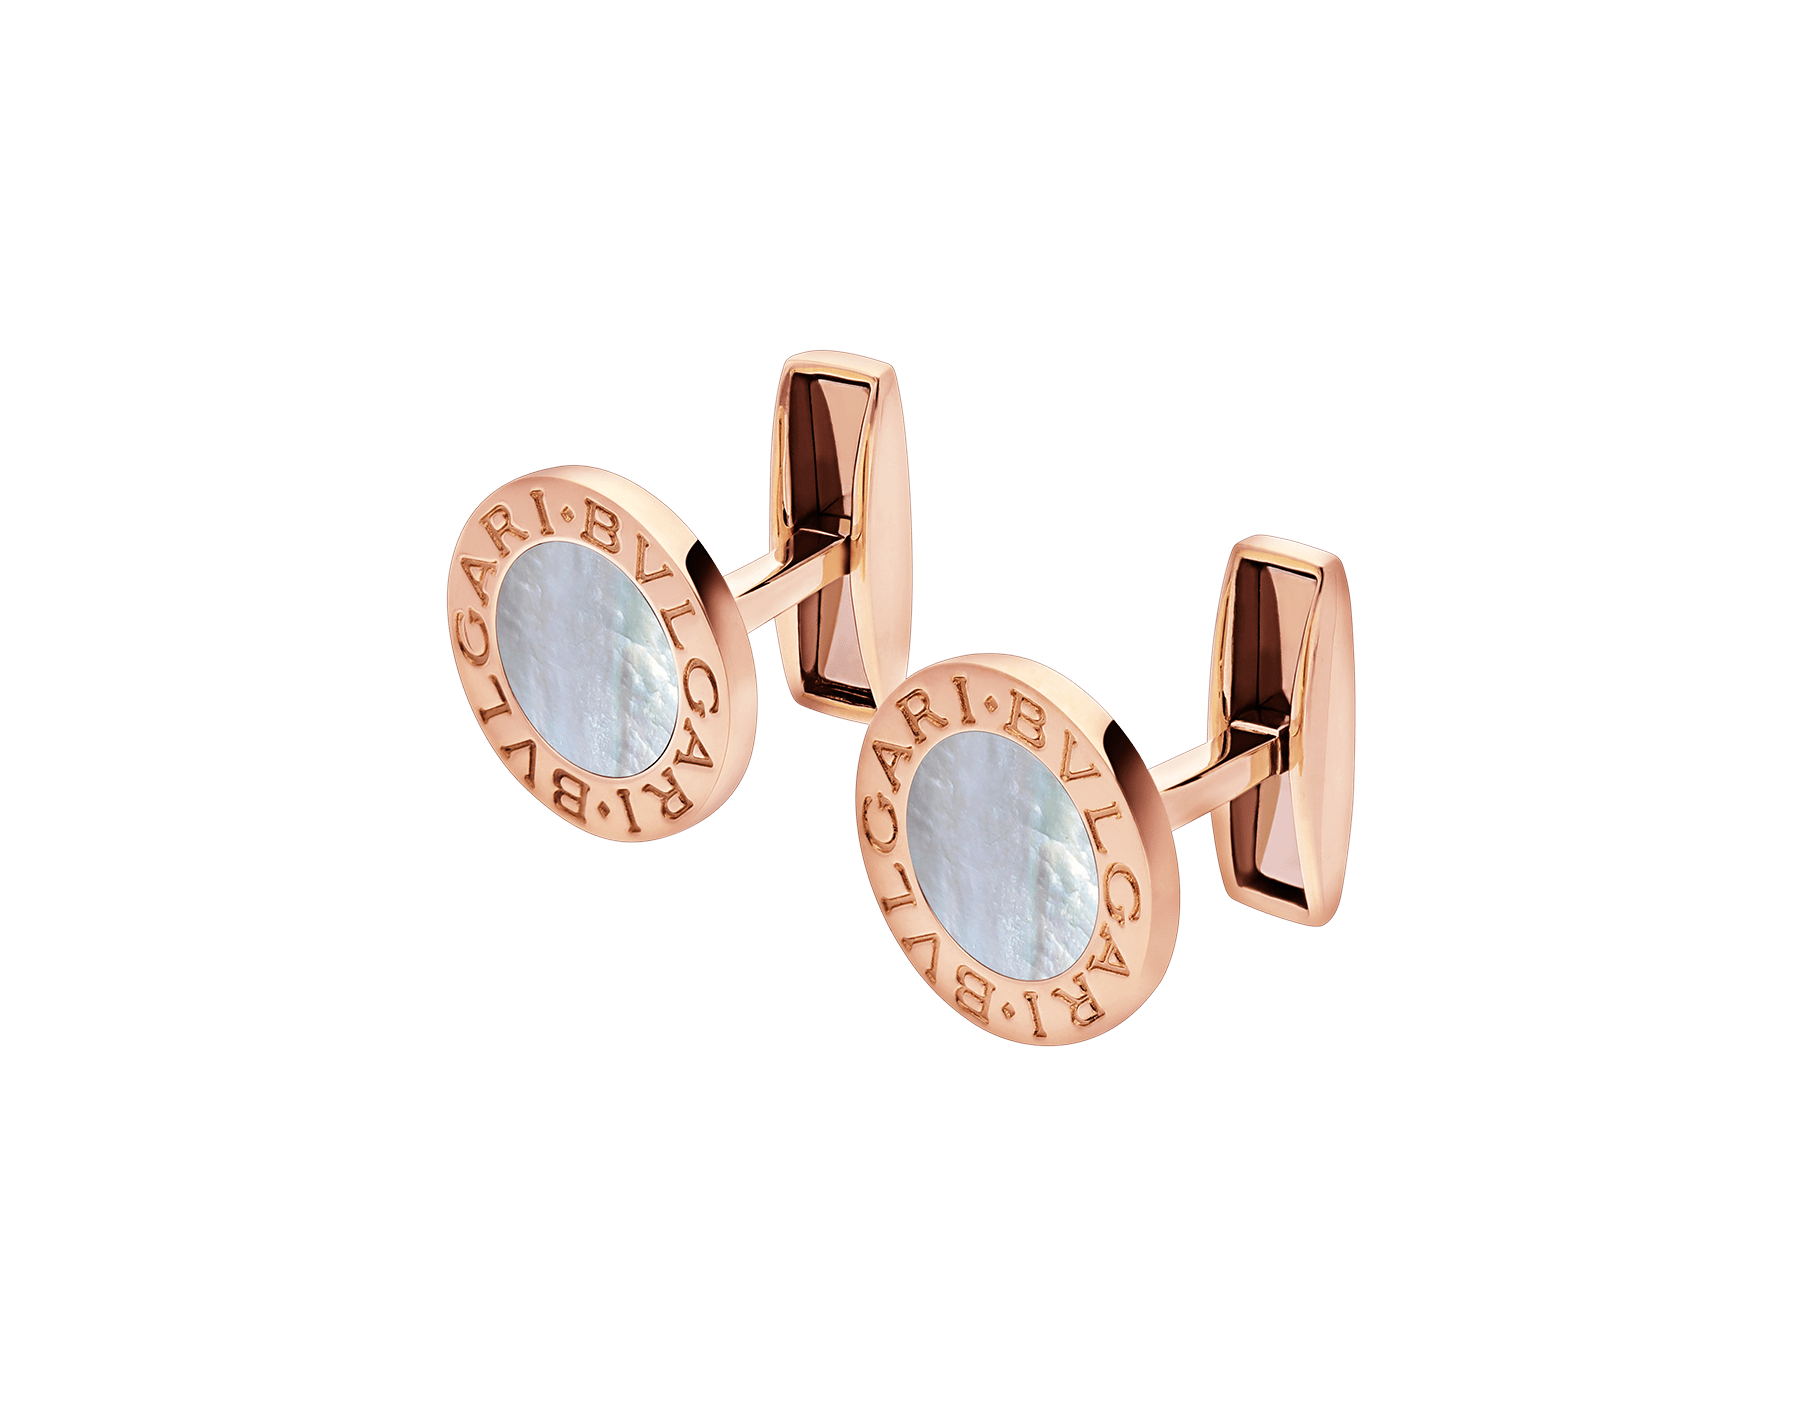 BVLGARI BVLGARI 18kt rose gold cufflinks set with mother-of-pearl elements 344428 image 2